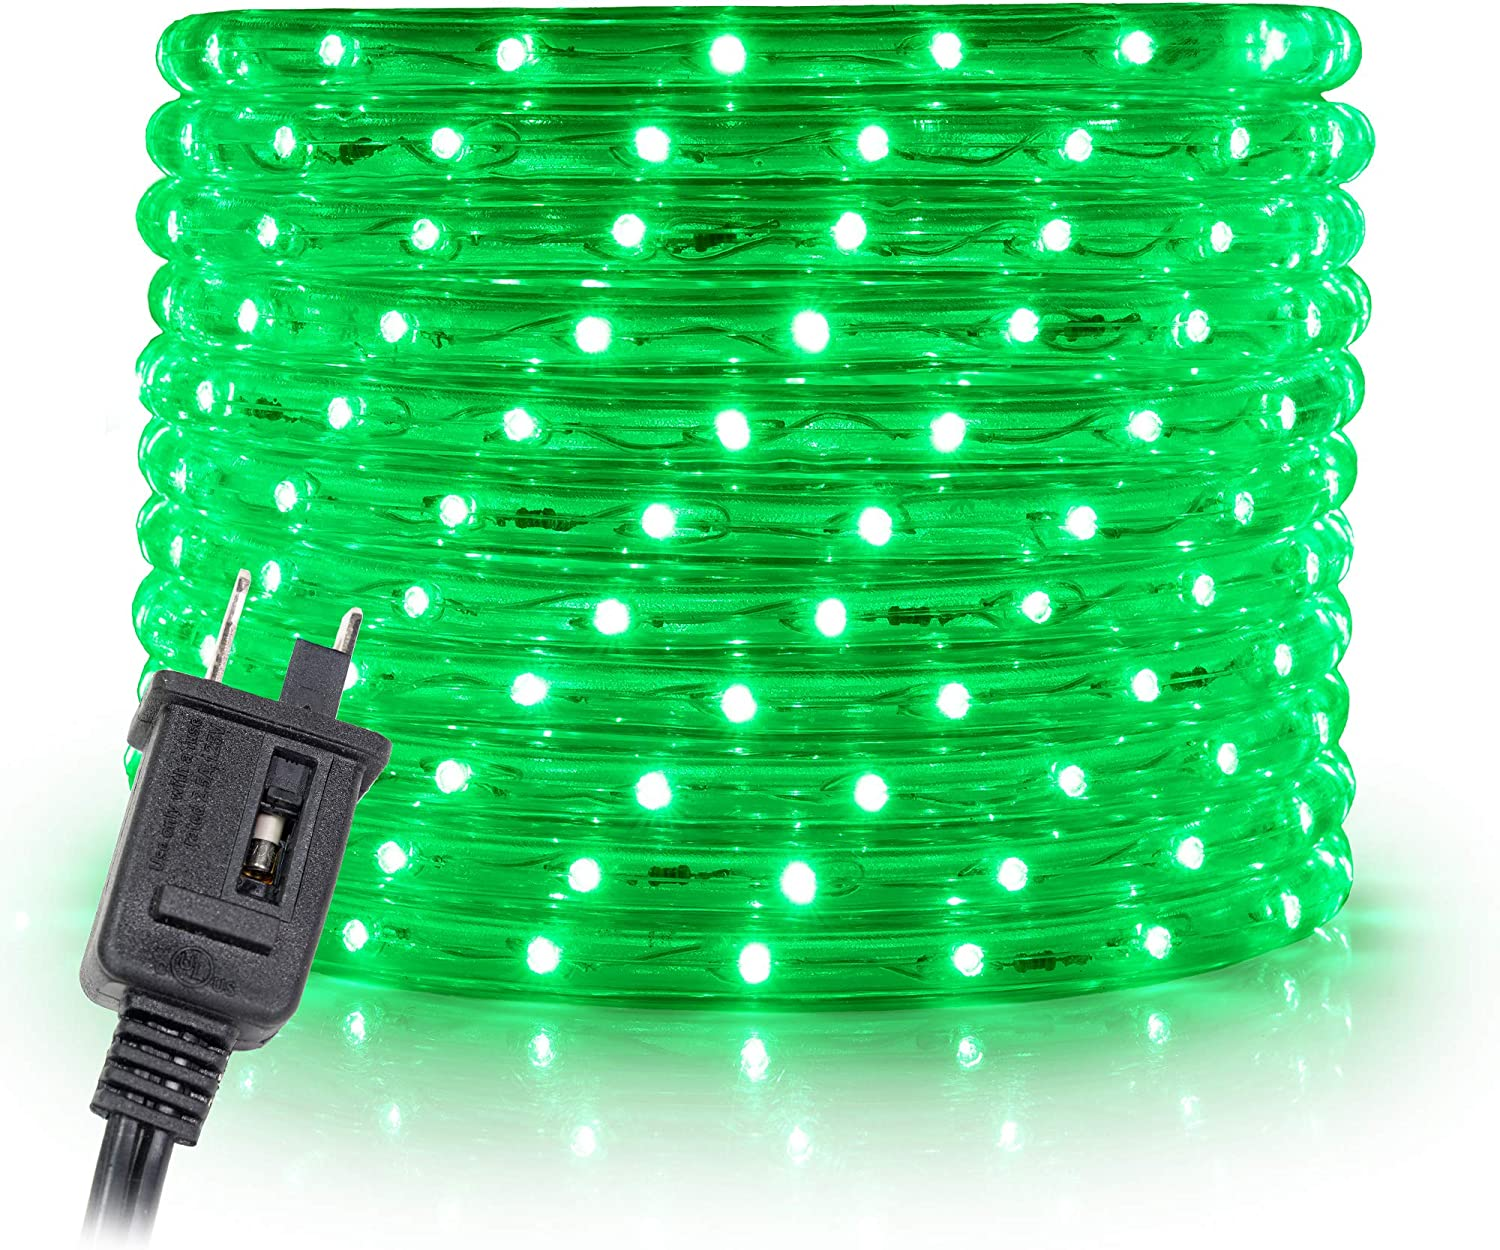 """WYZworks 150 feet 1/2"""" Thick Green Pre-Assembled LED Rope Lights with 10', 25', 50', 100' Option - Christmas Holiday Decoration Lighting 